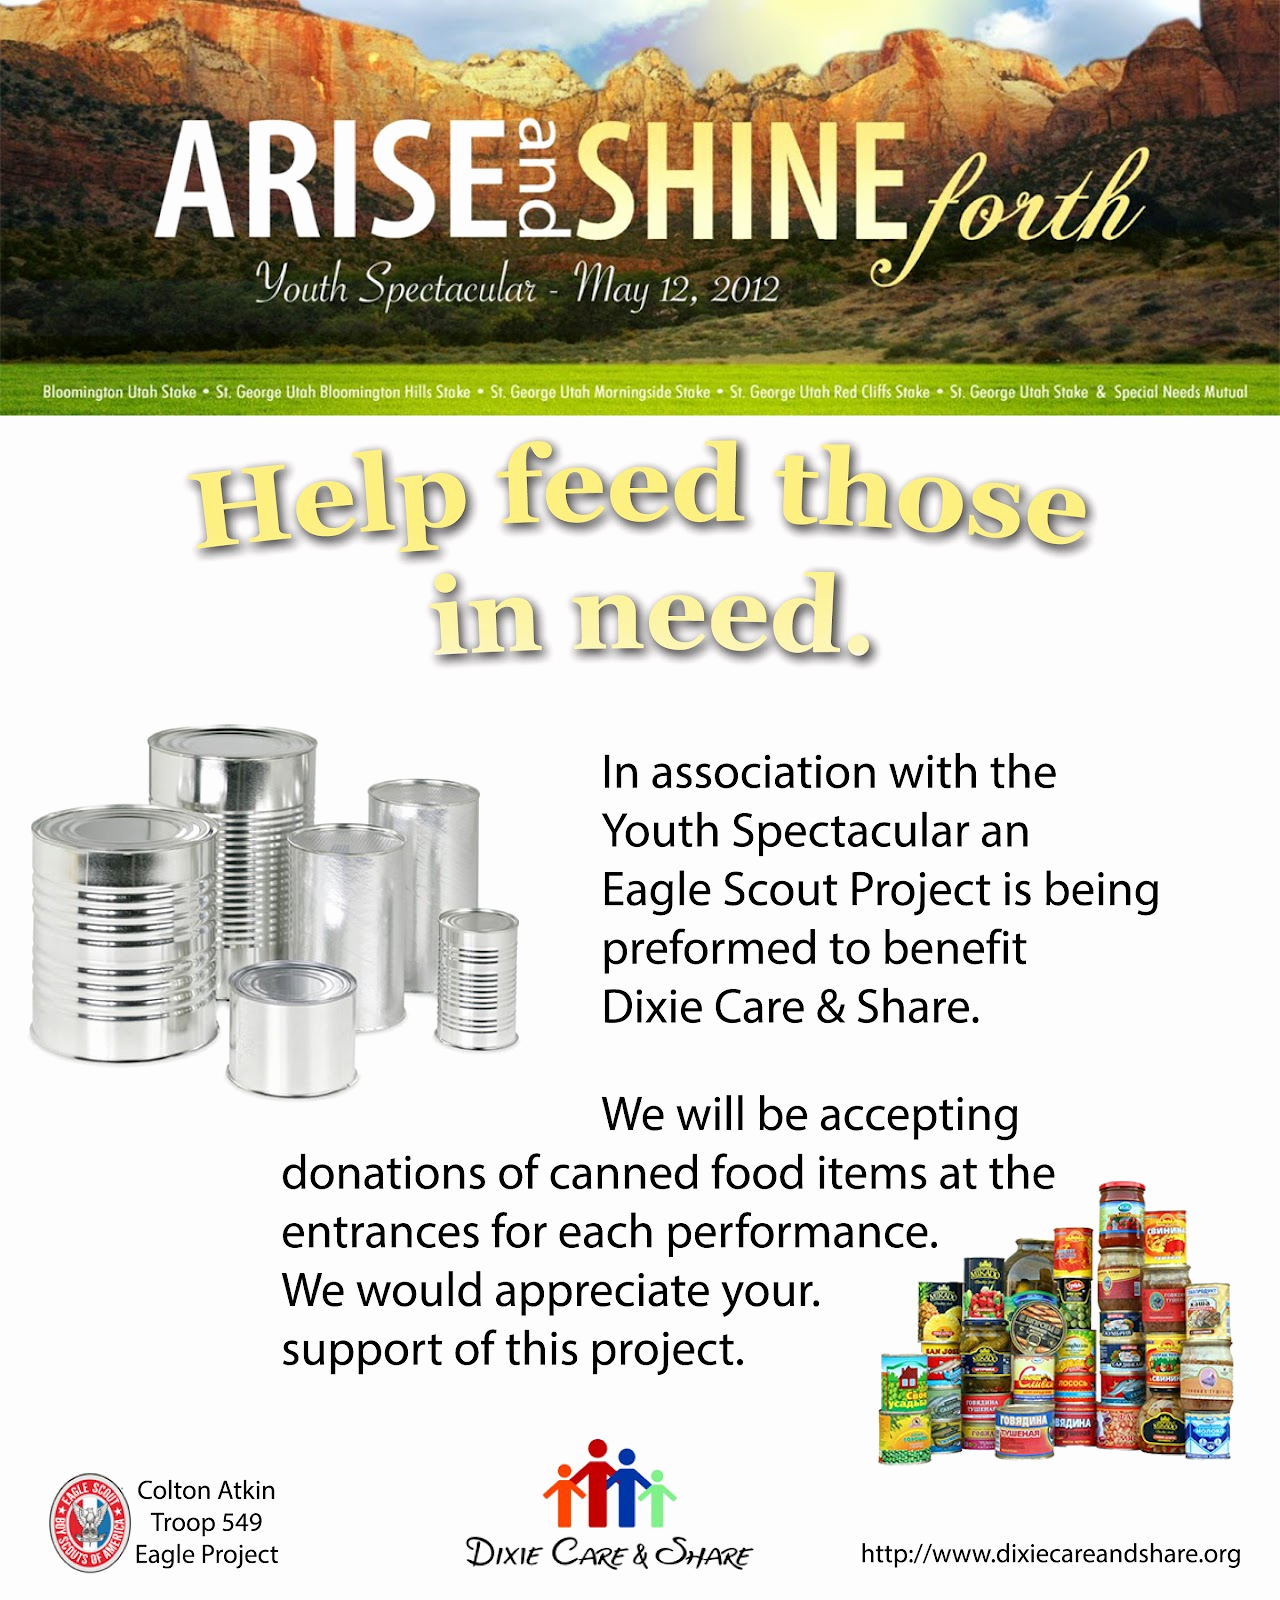 Can Food Drive Flyer Awesome Arise & Shine forth 2012 Youth Spectacular Updated Flyer